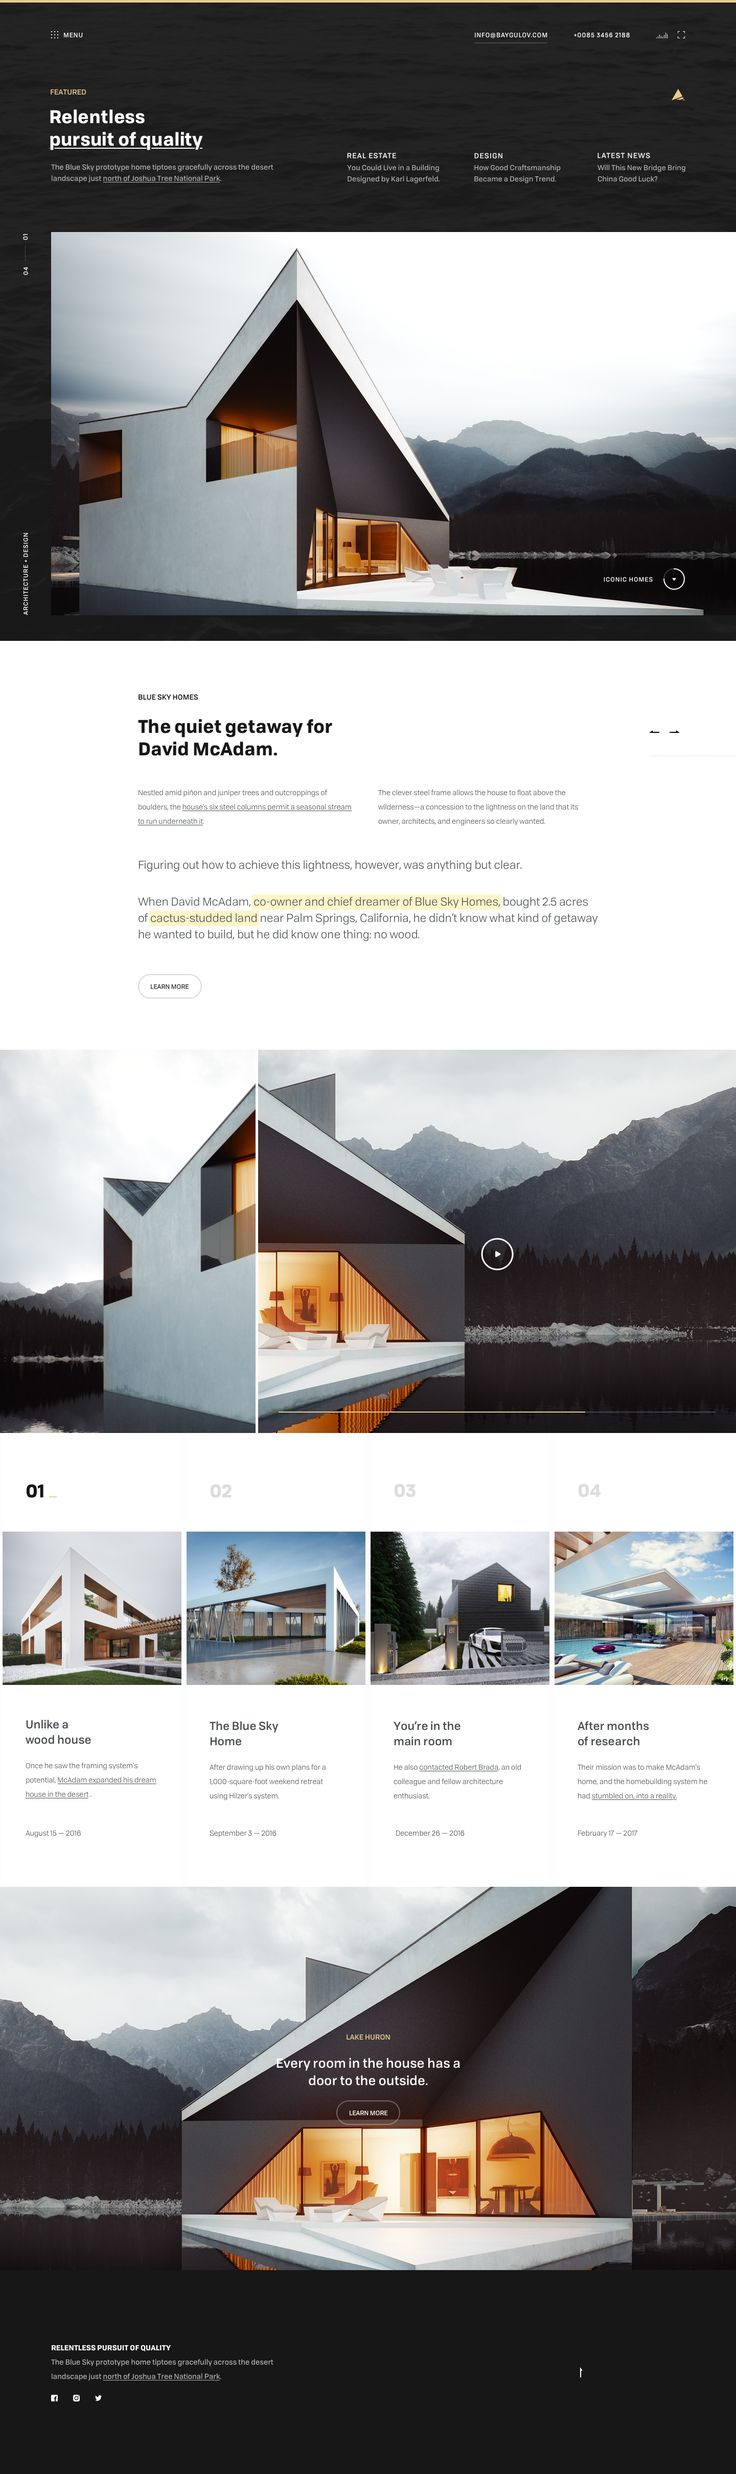 Beautiful website design for architecture. Great use of photography and grid.